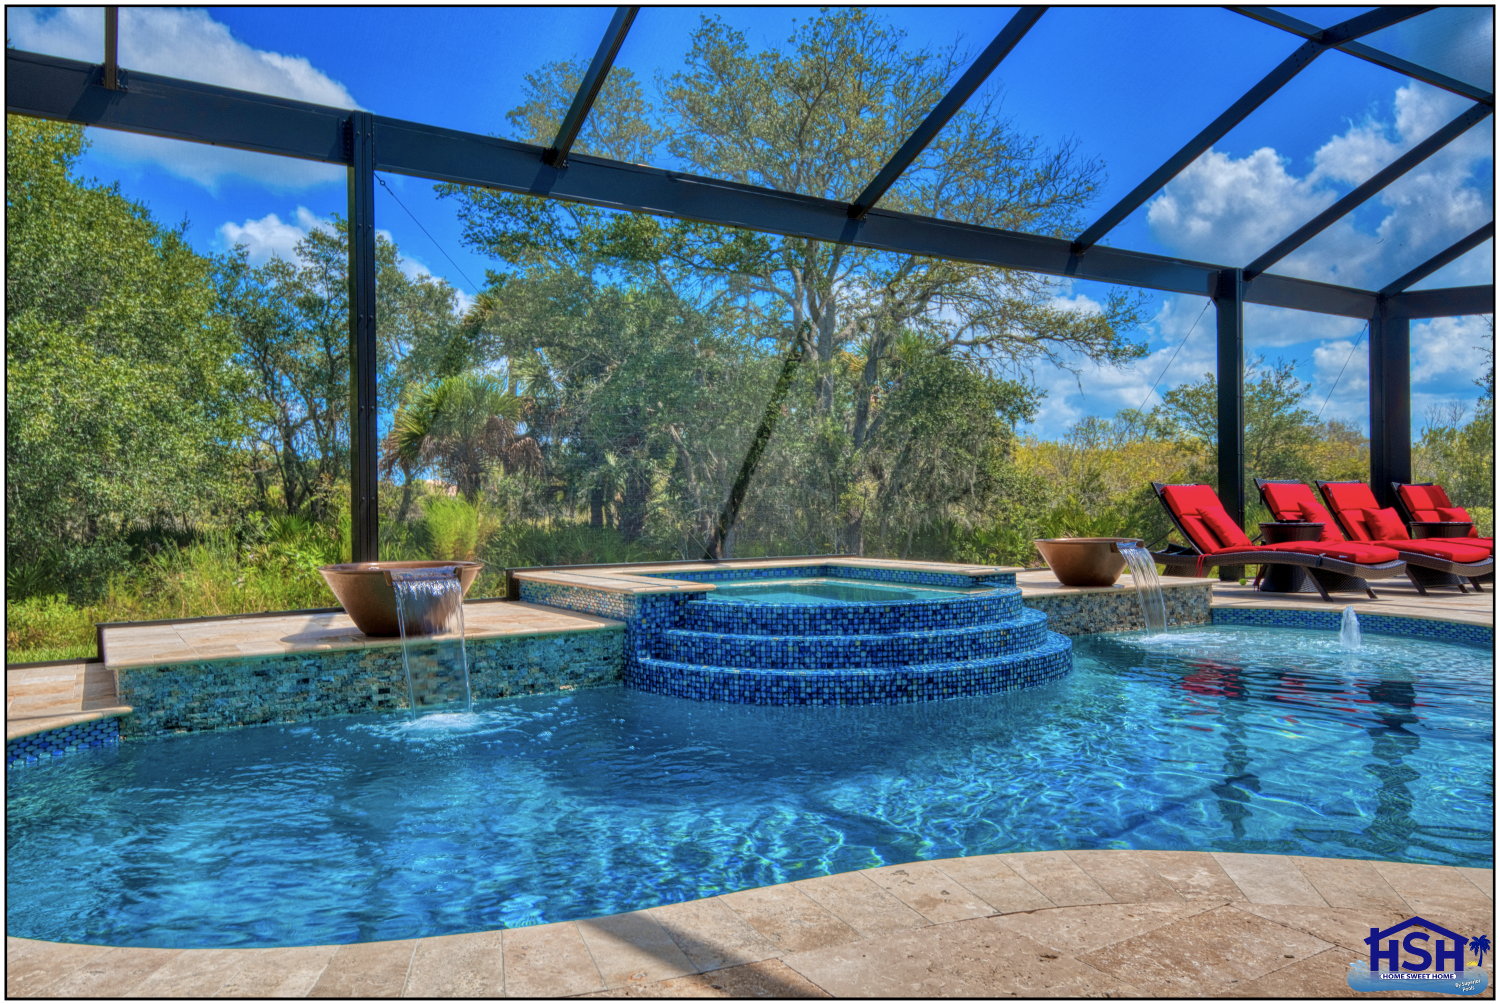 64 Home Sweet Home By Superior Pools Ideas Custom Pools Pool Contractors Sweet Home